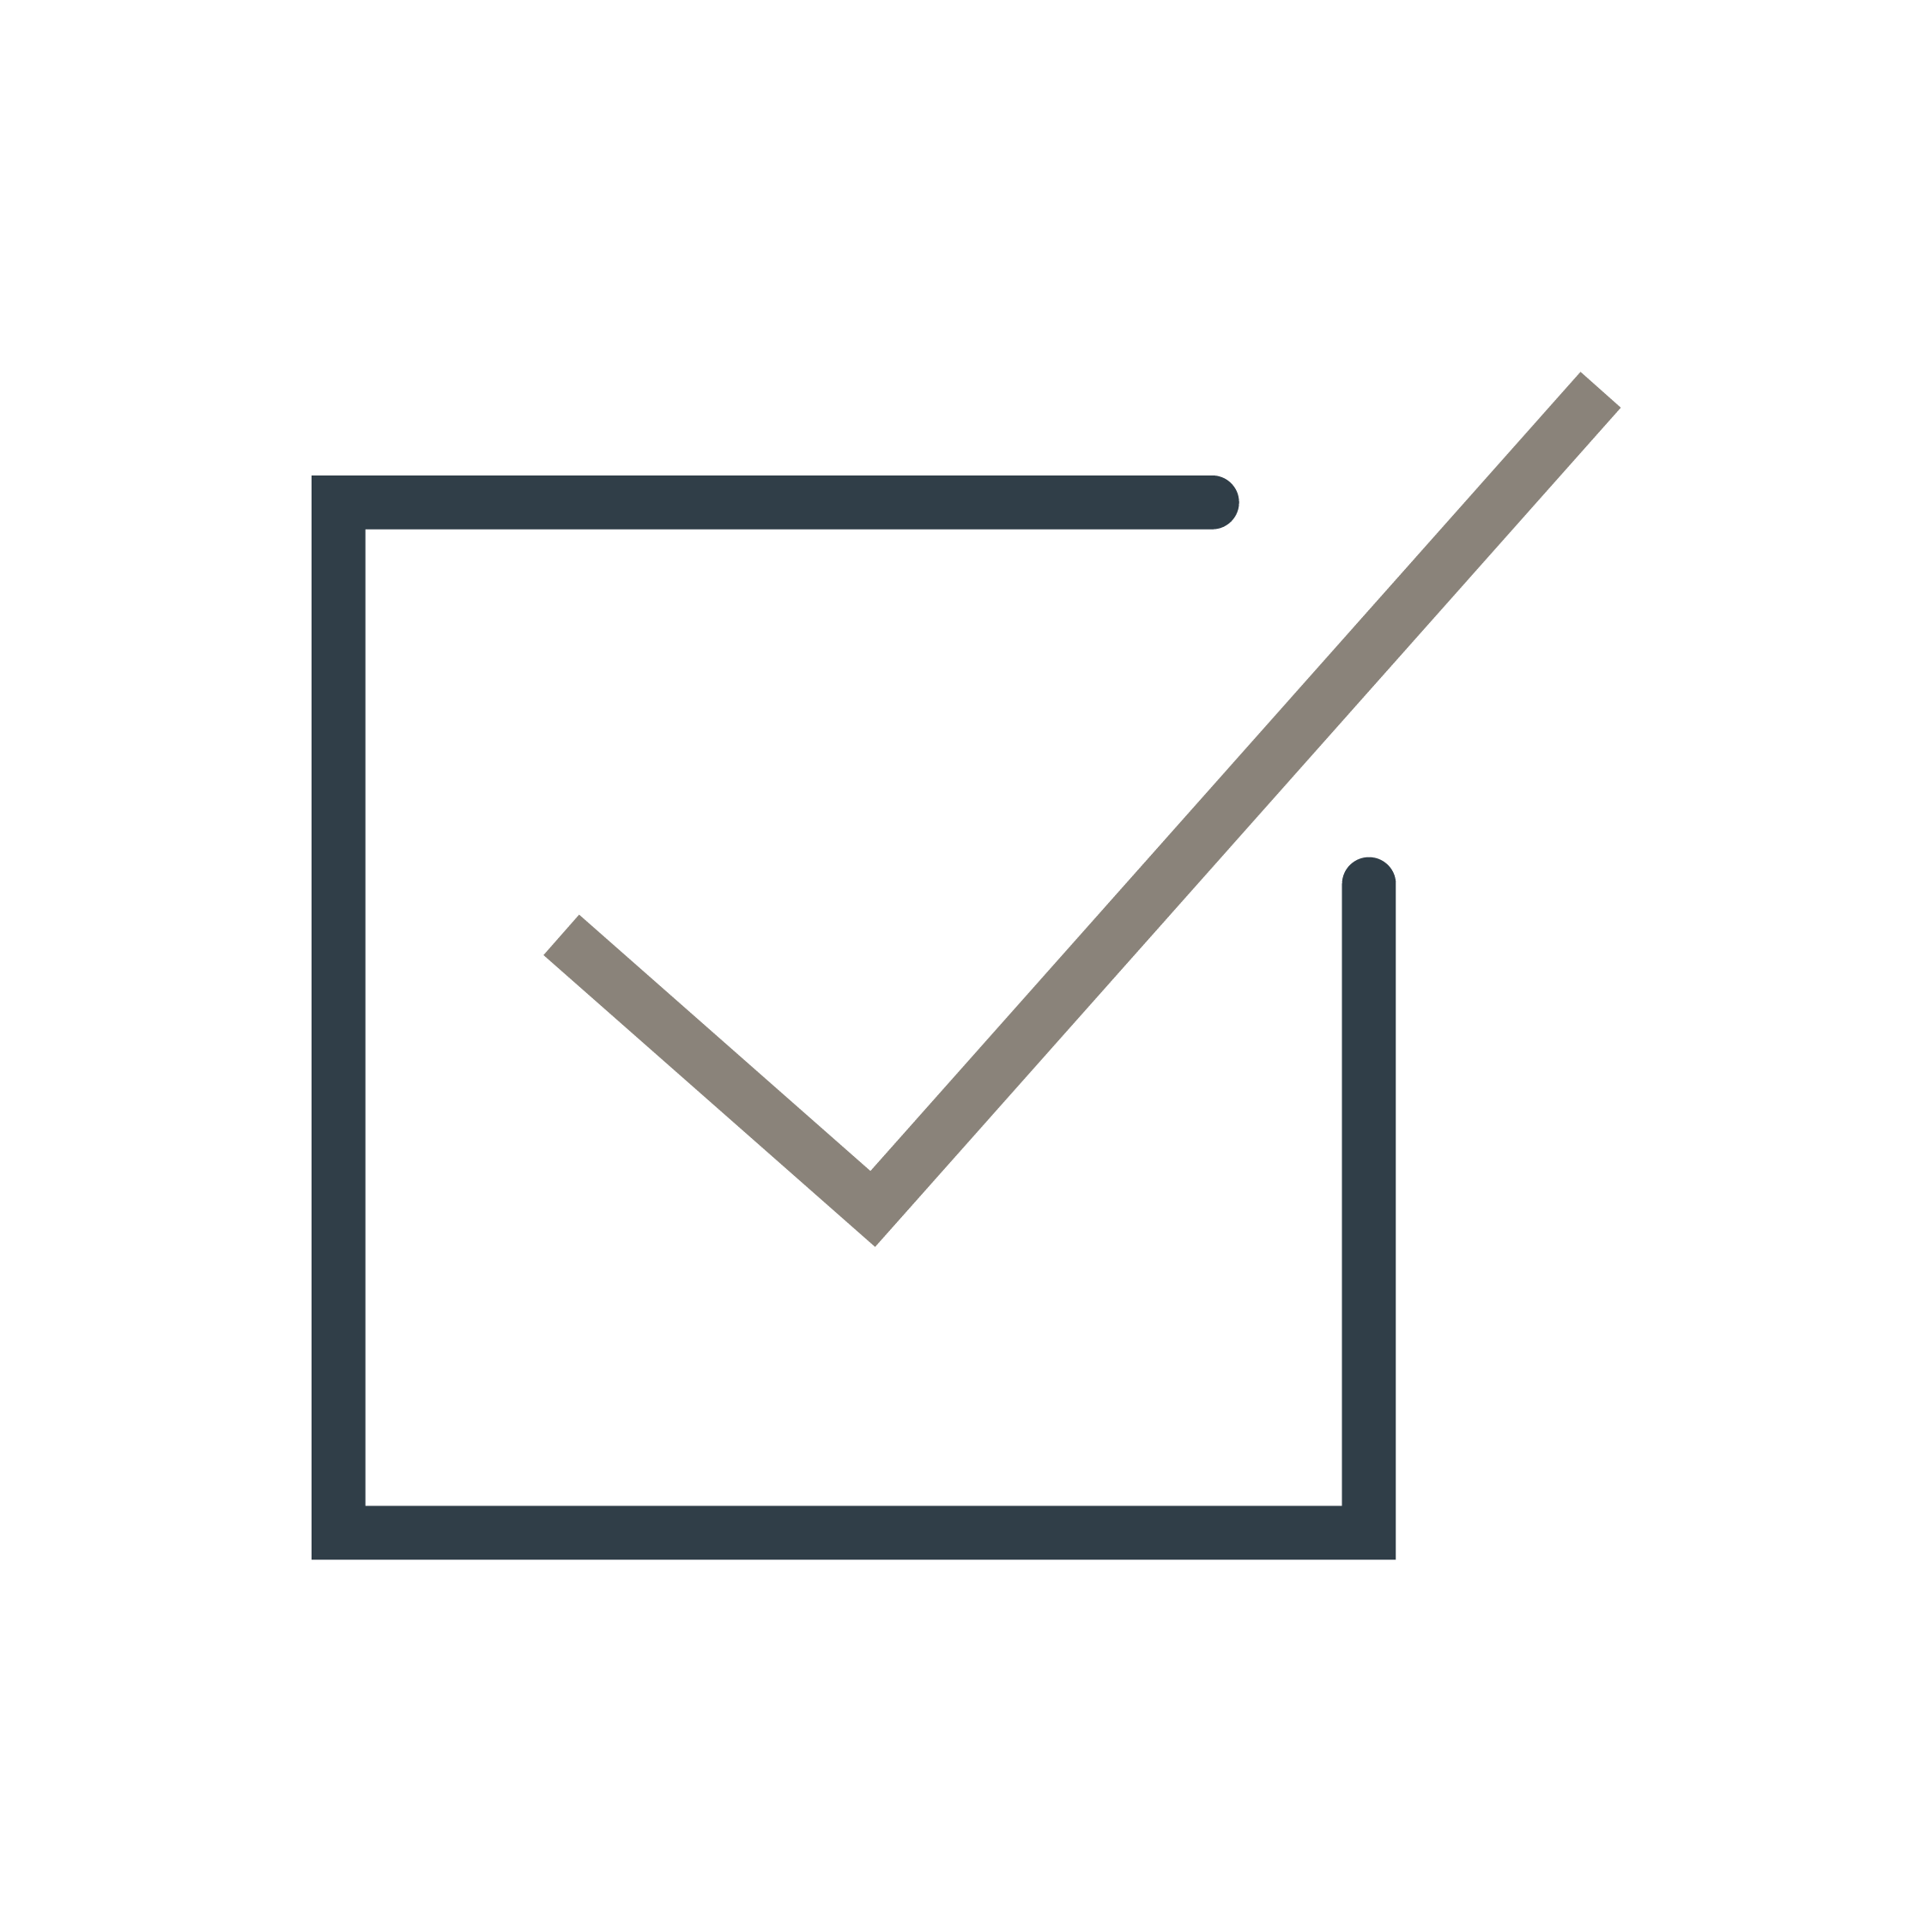 icon-finalize-export.png